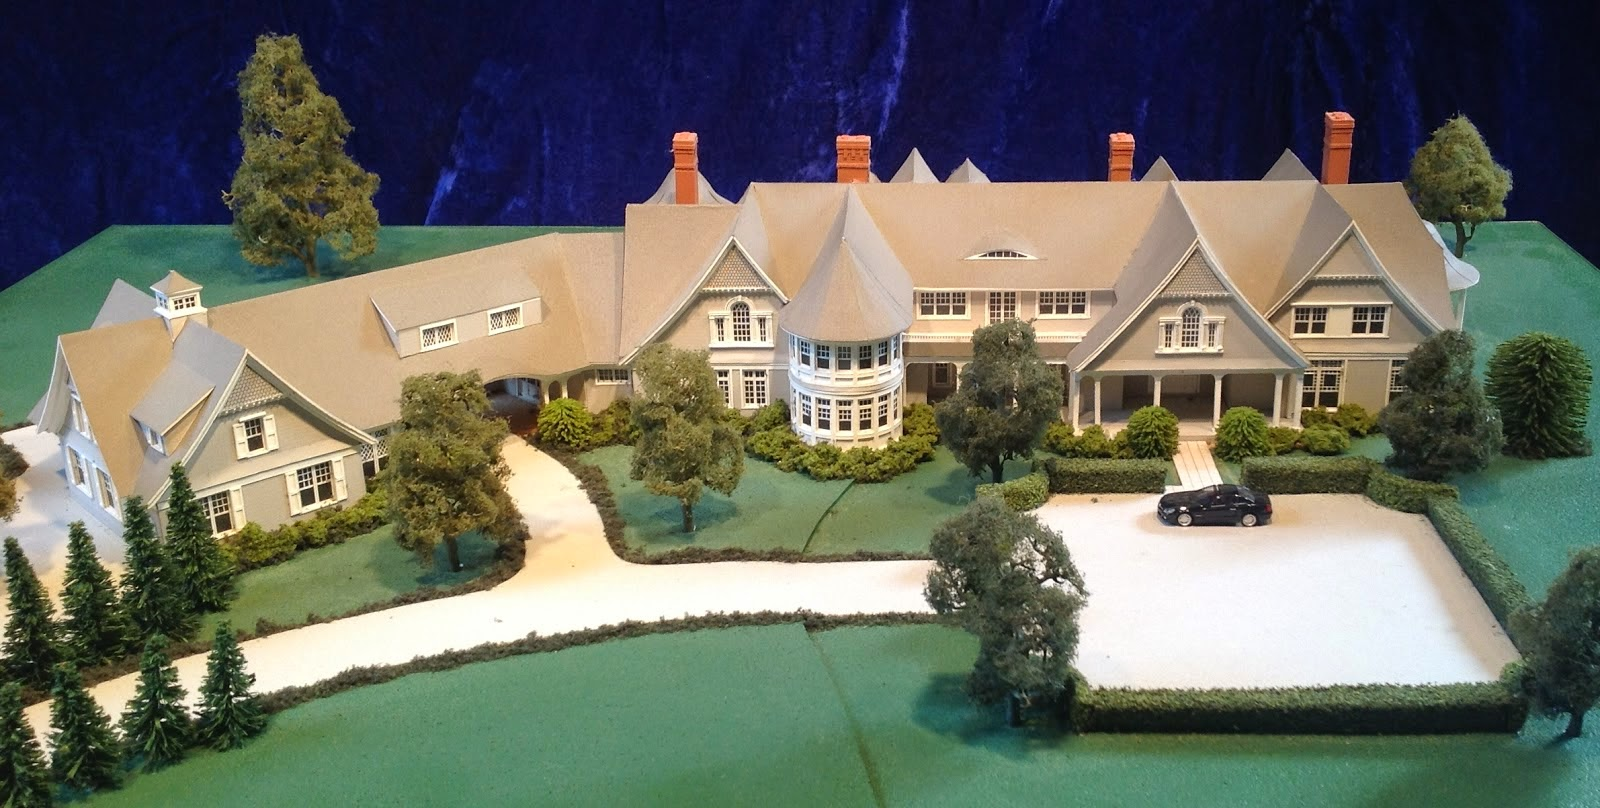 Houses of the hamptons for Hamptons home and garden design penarth